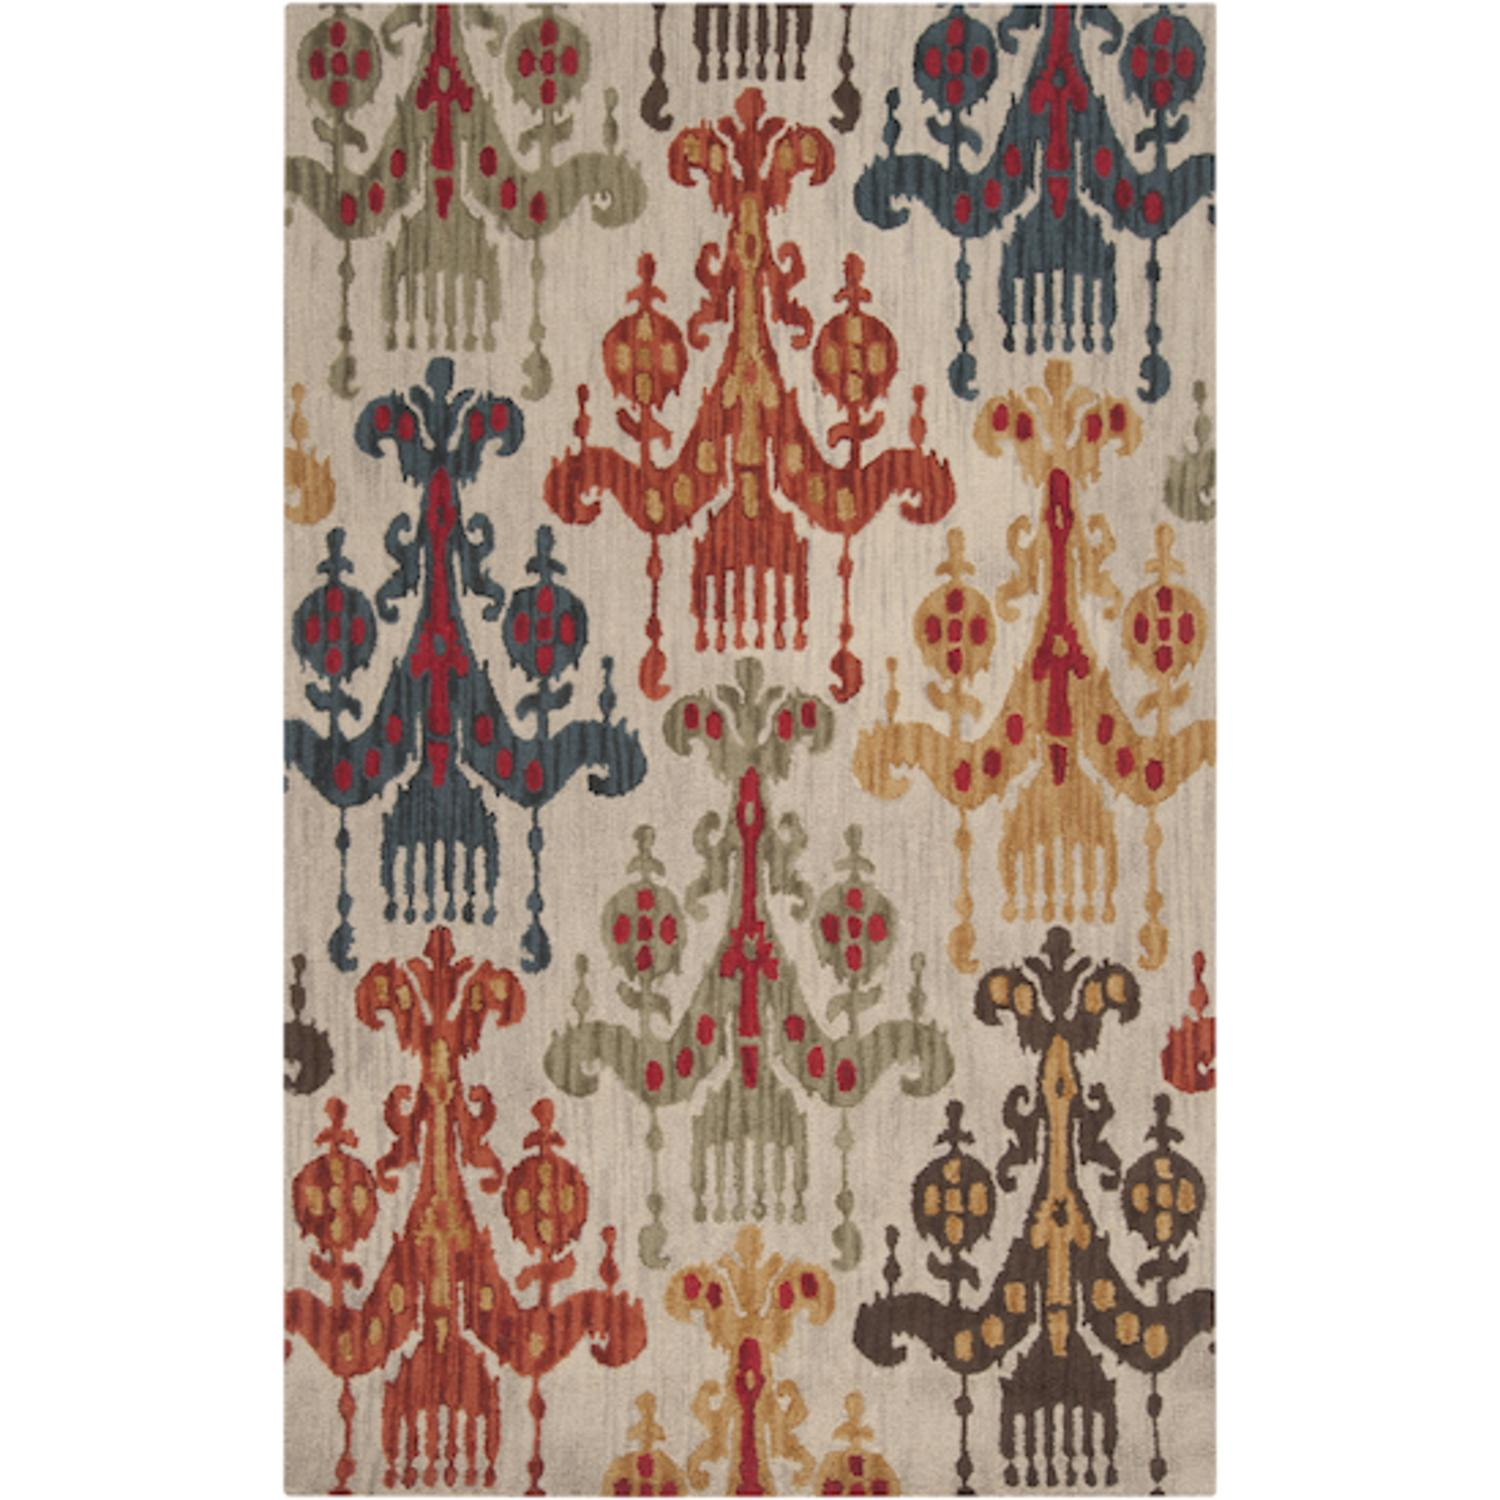 2' x 3' Lhasa Aglow Safari Tan and Multi-Colored Wool Area Throw Rug